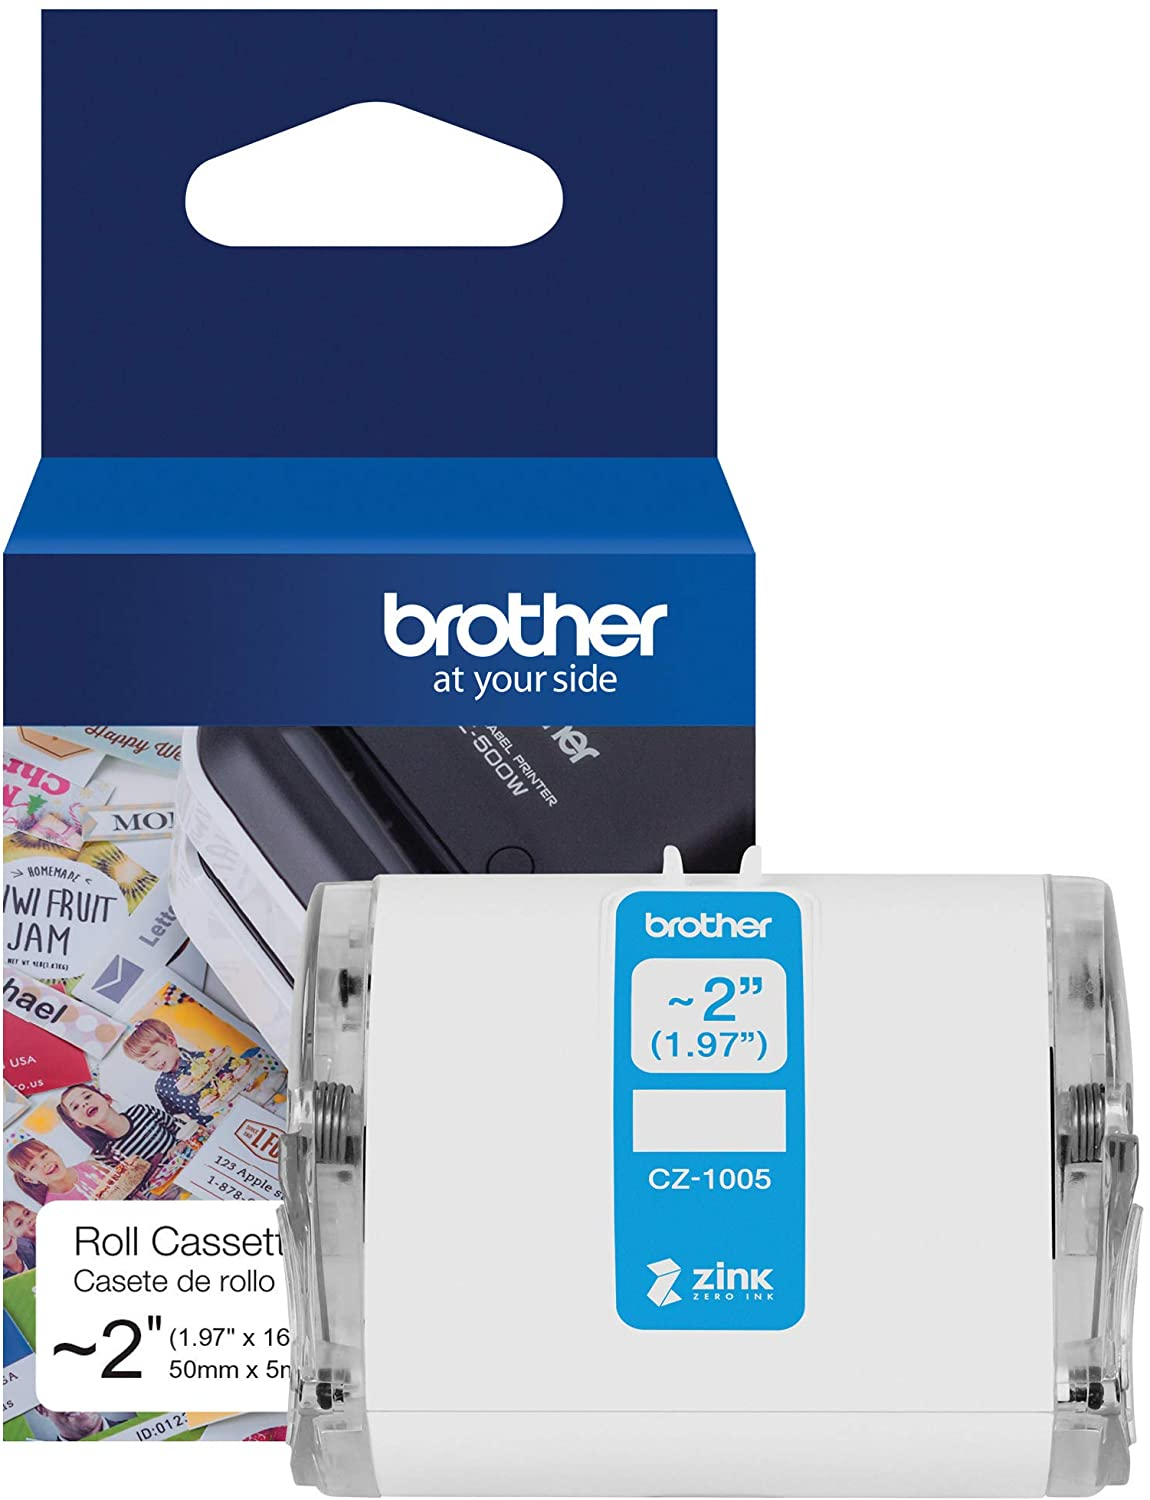 "Brother Genuine CZ-1005 Continuous Length ~ 2 (1.97"") 50 mm Wide x 16.4 ft. (5 m) Long Label roll Featuring Zink Zero Ink Technology : Office Products"